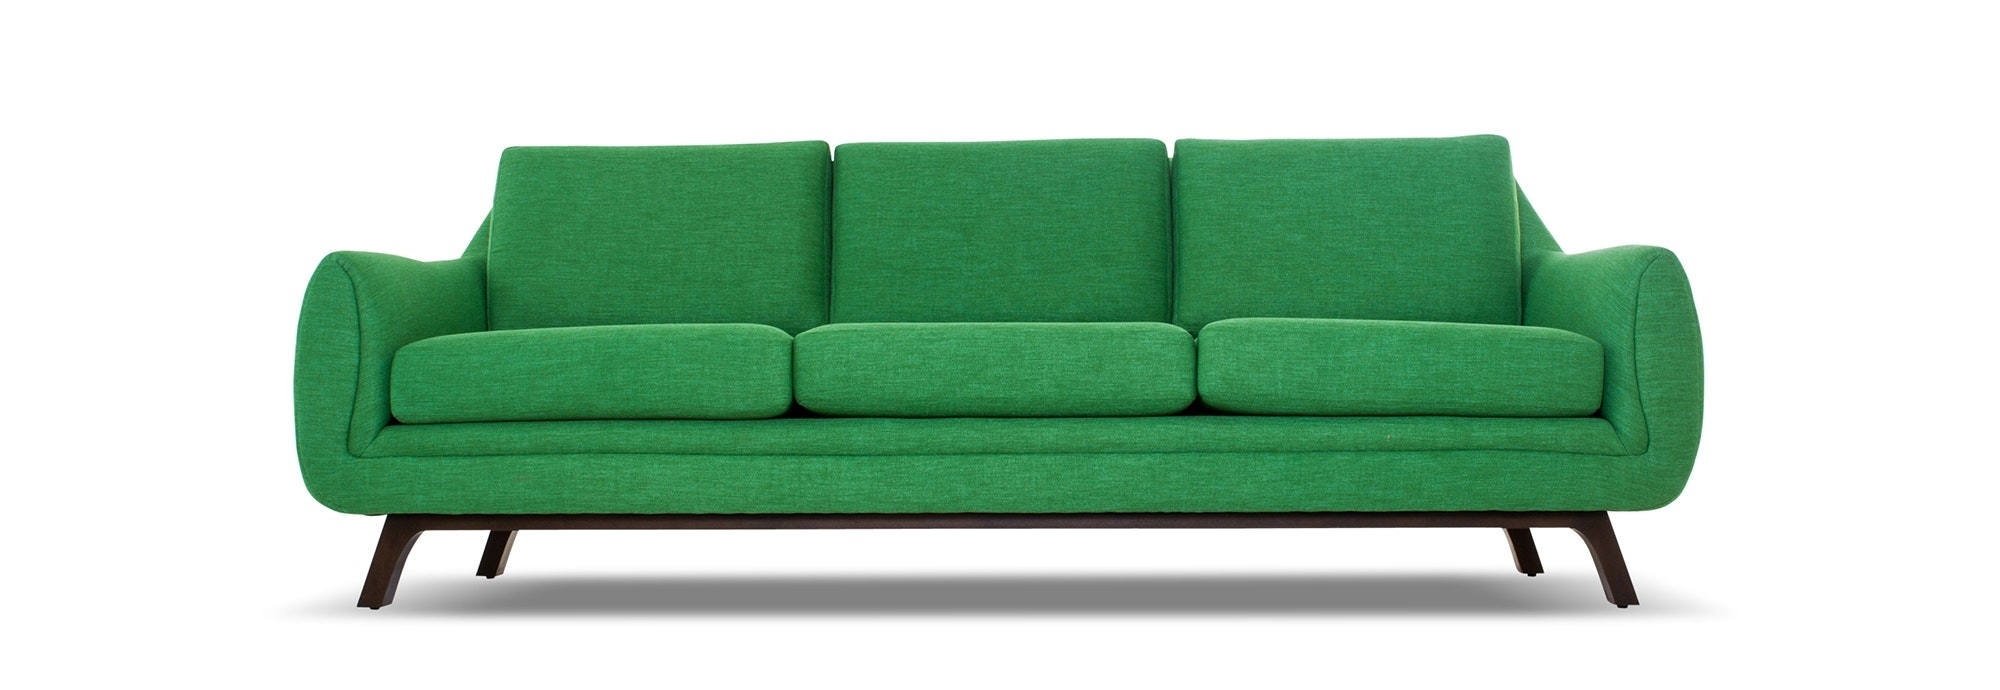 Joybird With Regard To Favorite Sectional Sofas At Buffalo Ny (View 10 of 20)